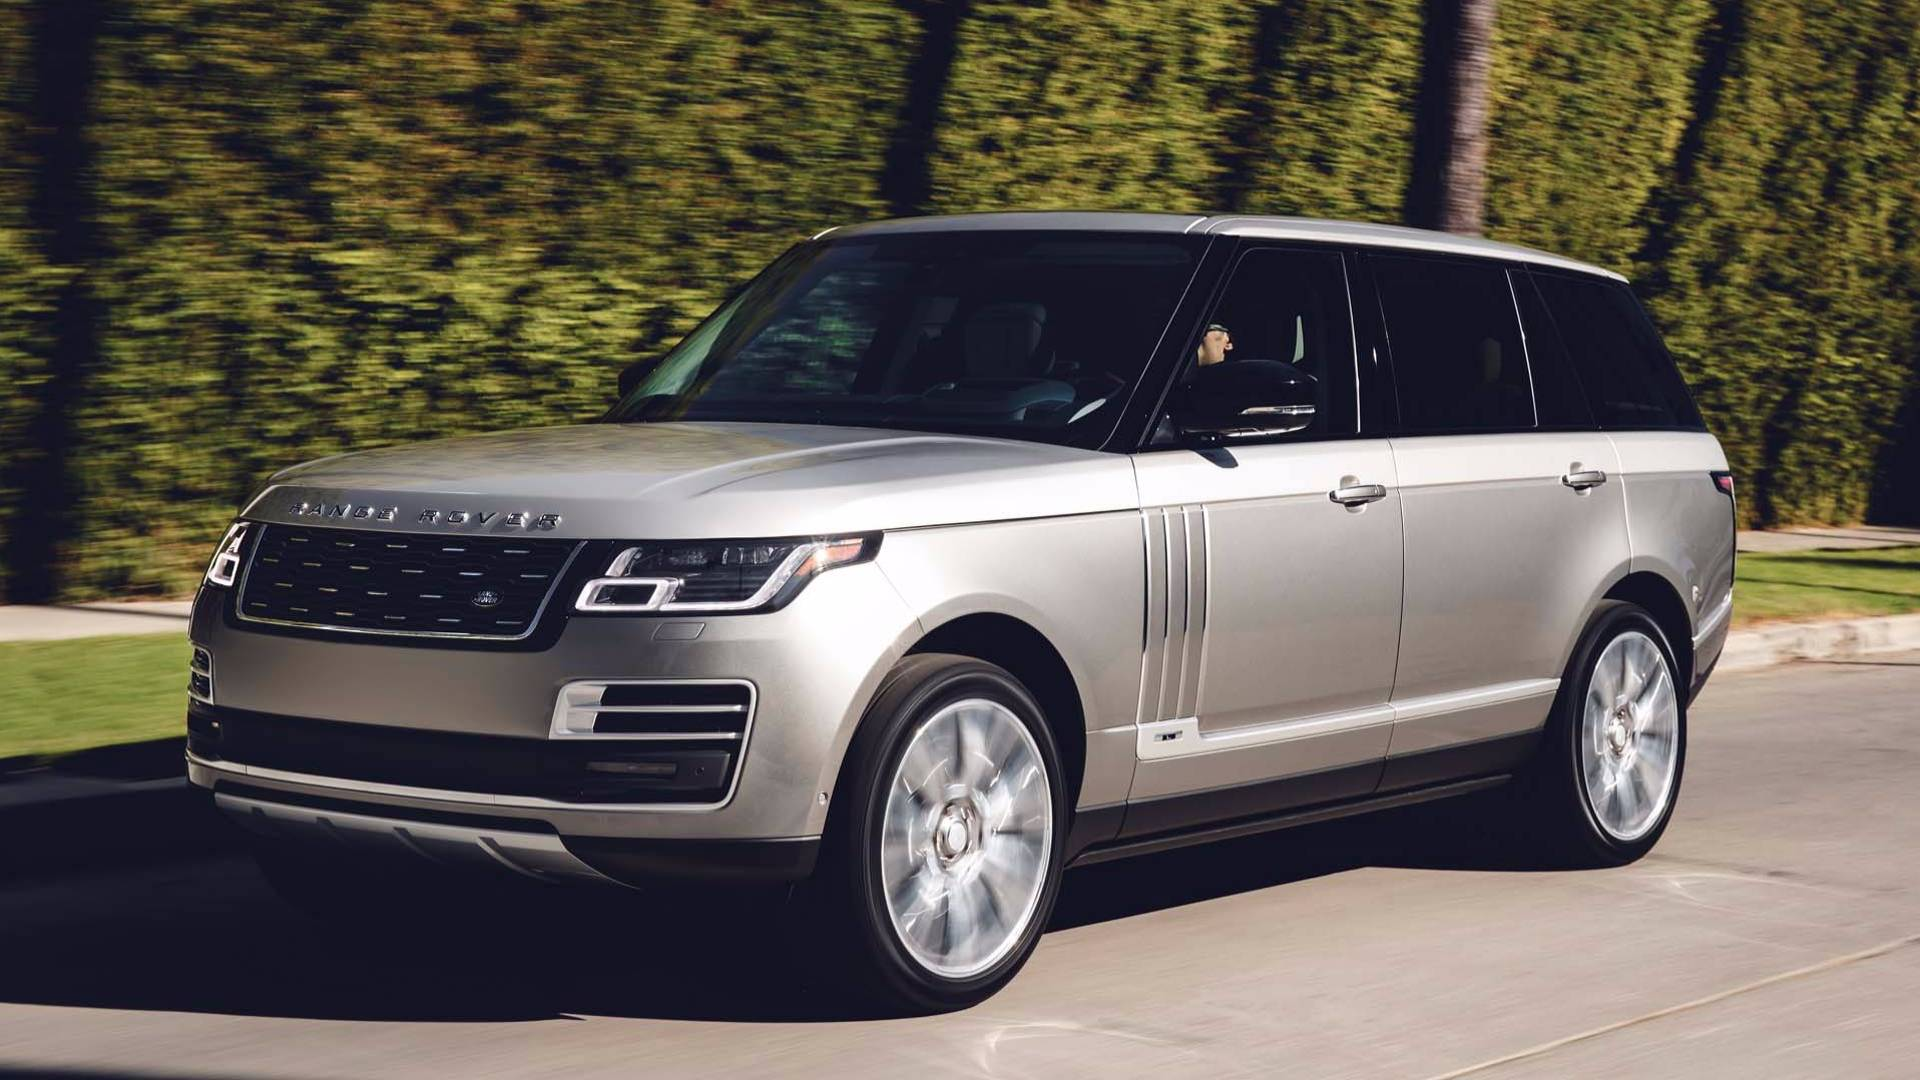 Landrover Range 2021 Range Rover To Be A Lot Lighter Thanks To All New Platform